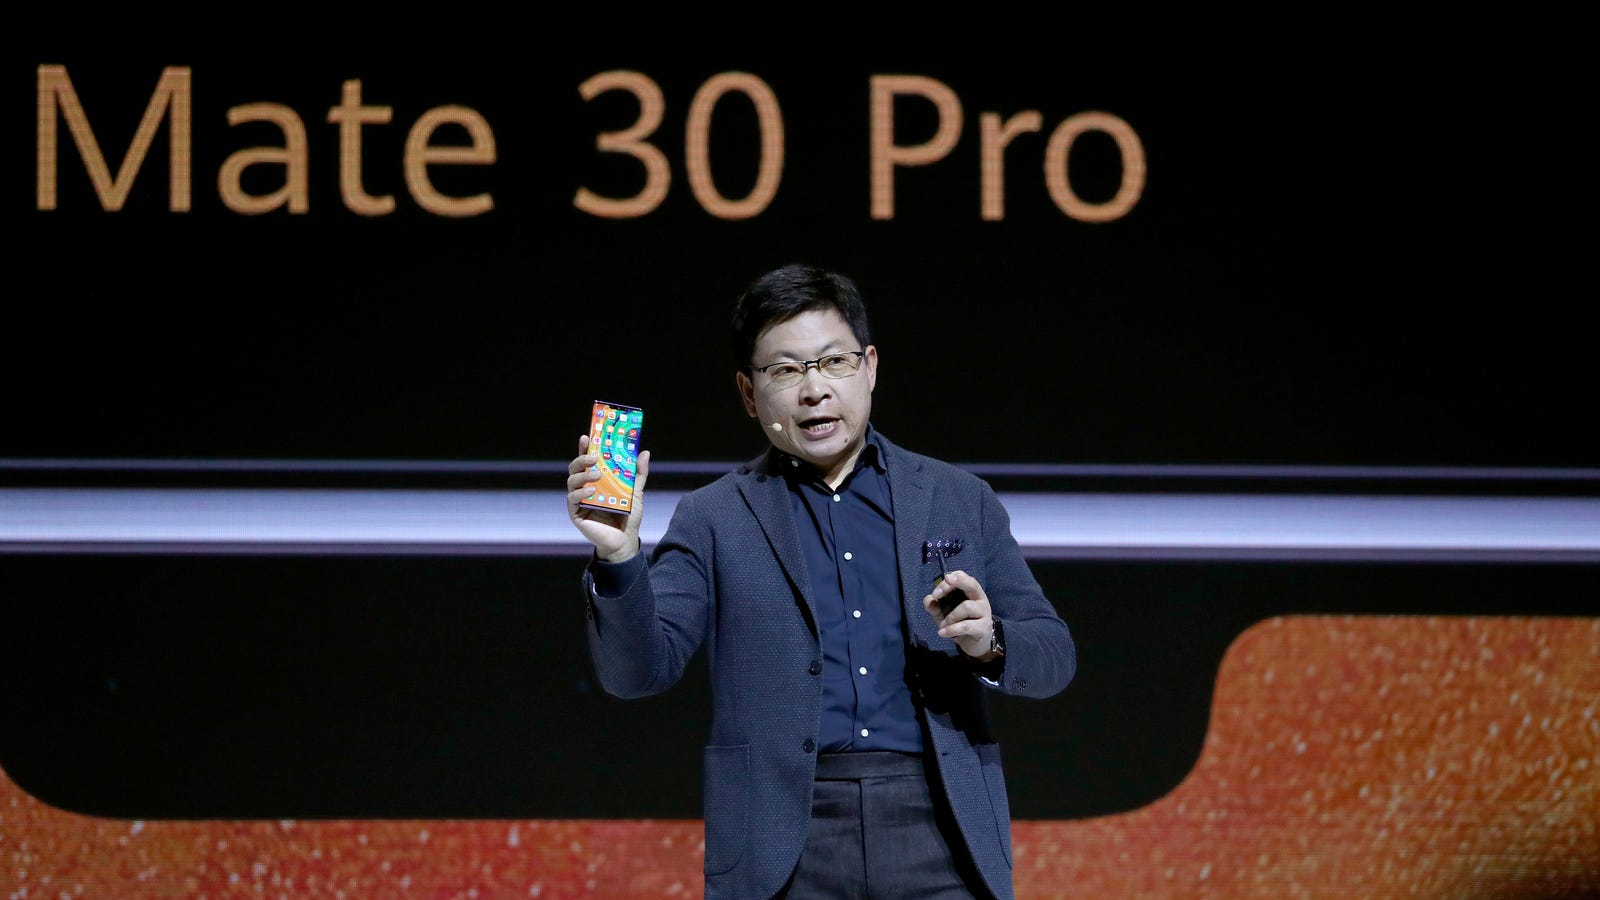 Huawei Says Mate 30 Series Bootloader Will Be Unlockable, Allowing Easier Access to Google Apps